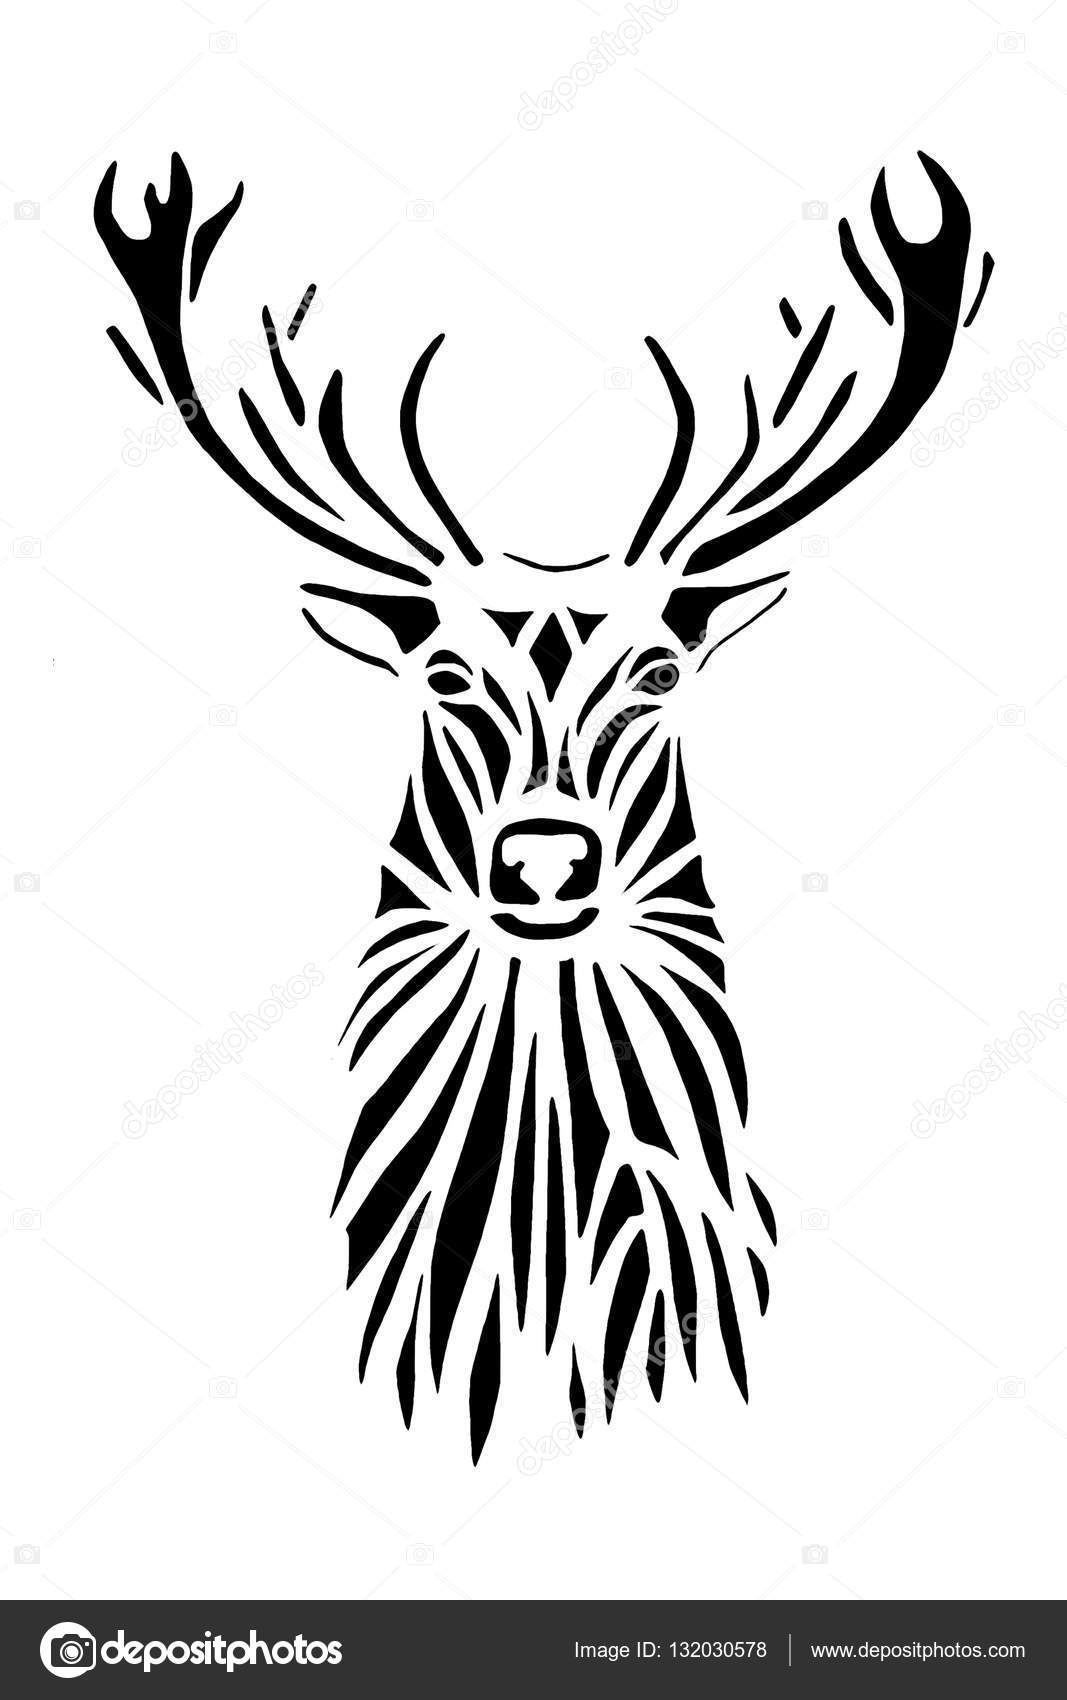 1067x1700 Black Silhouette Face Of Deer On White Background. Stock Photo